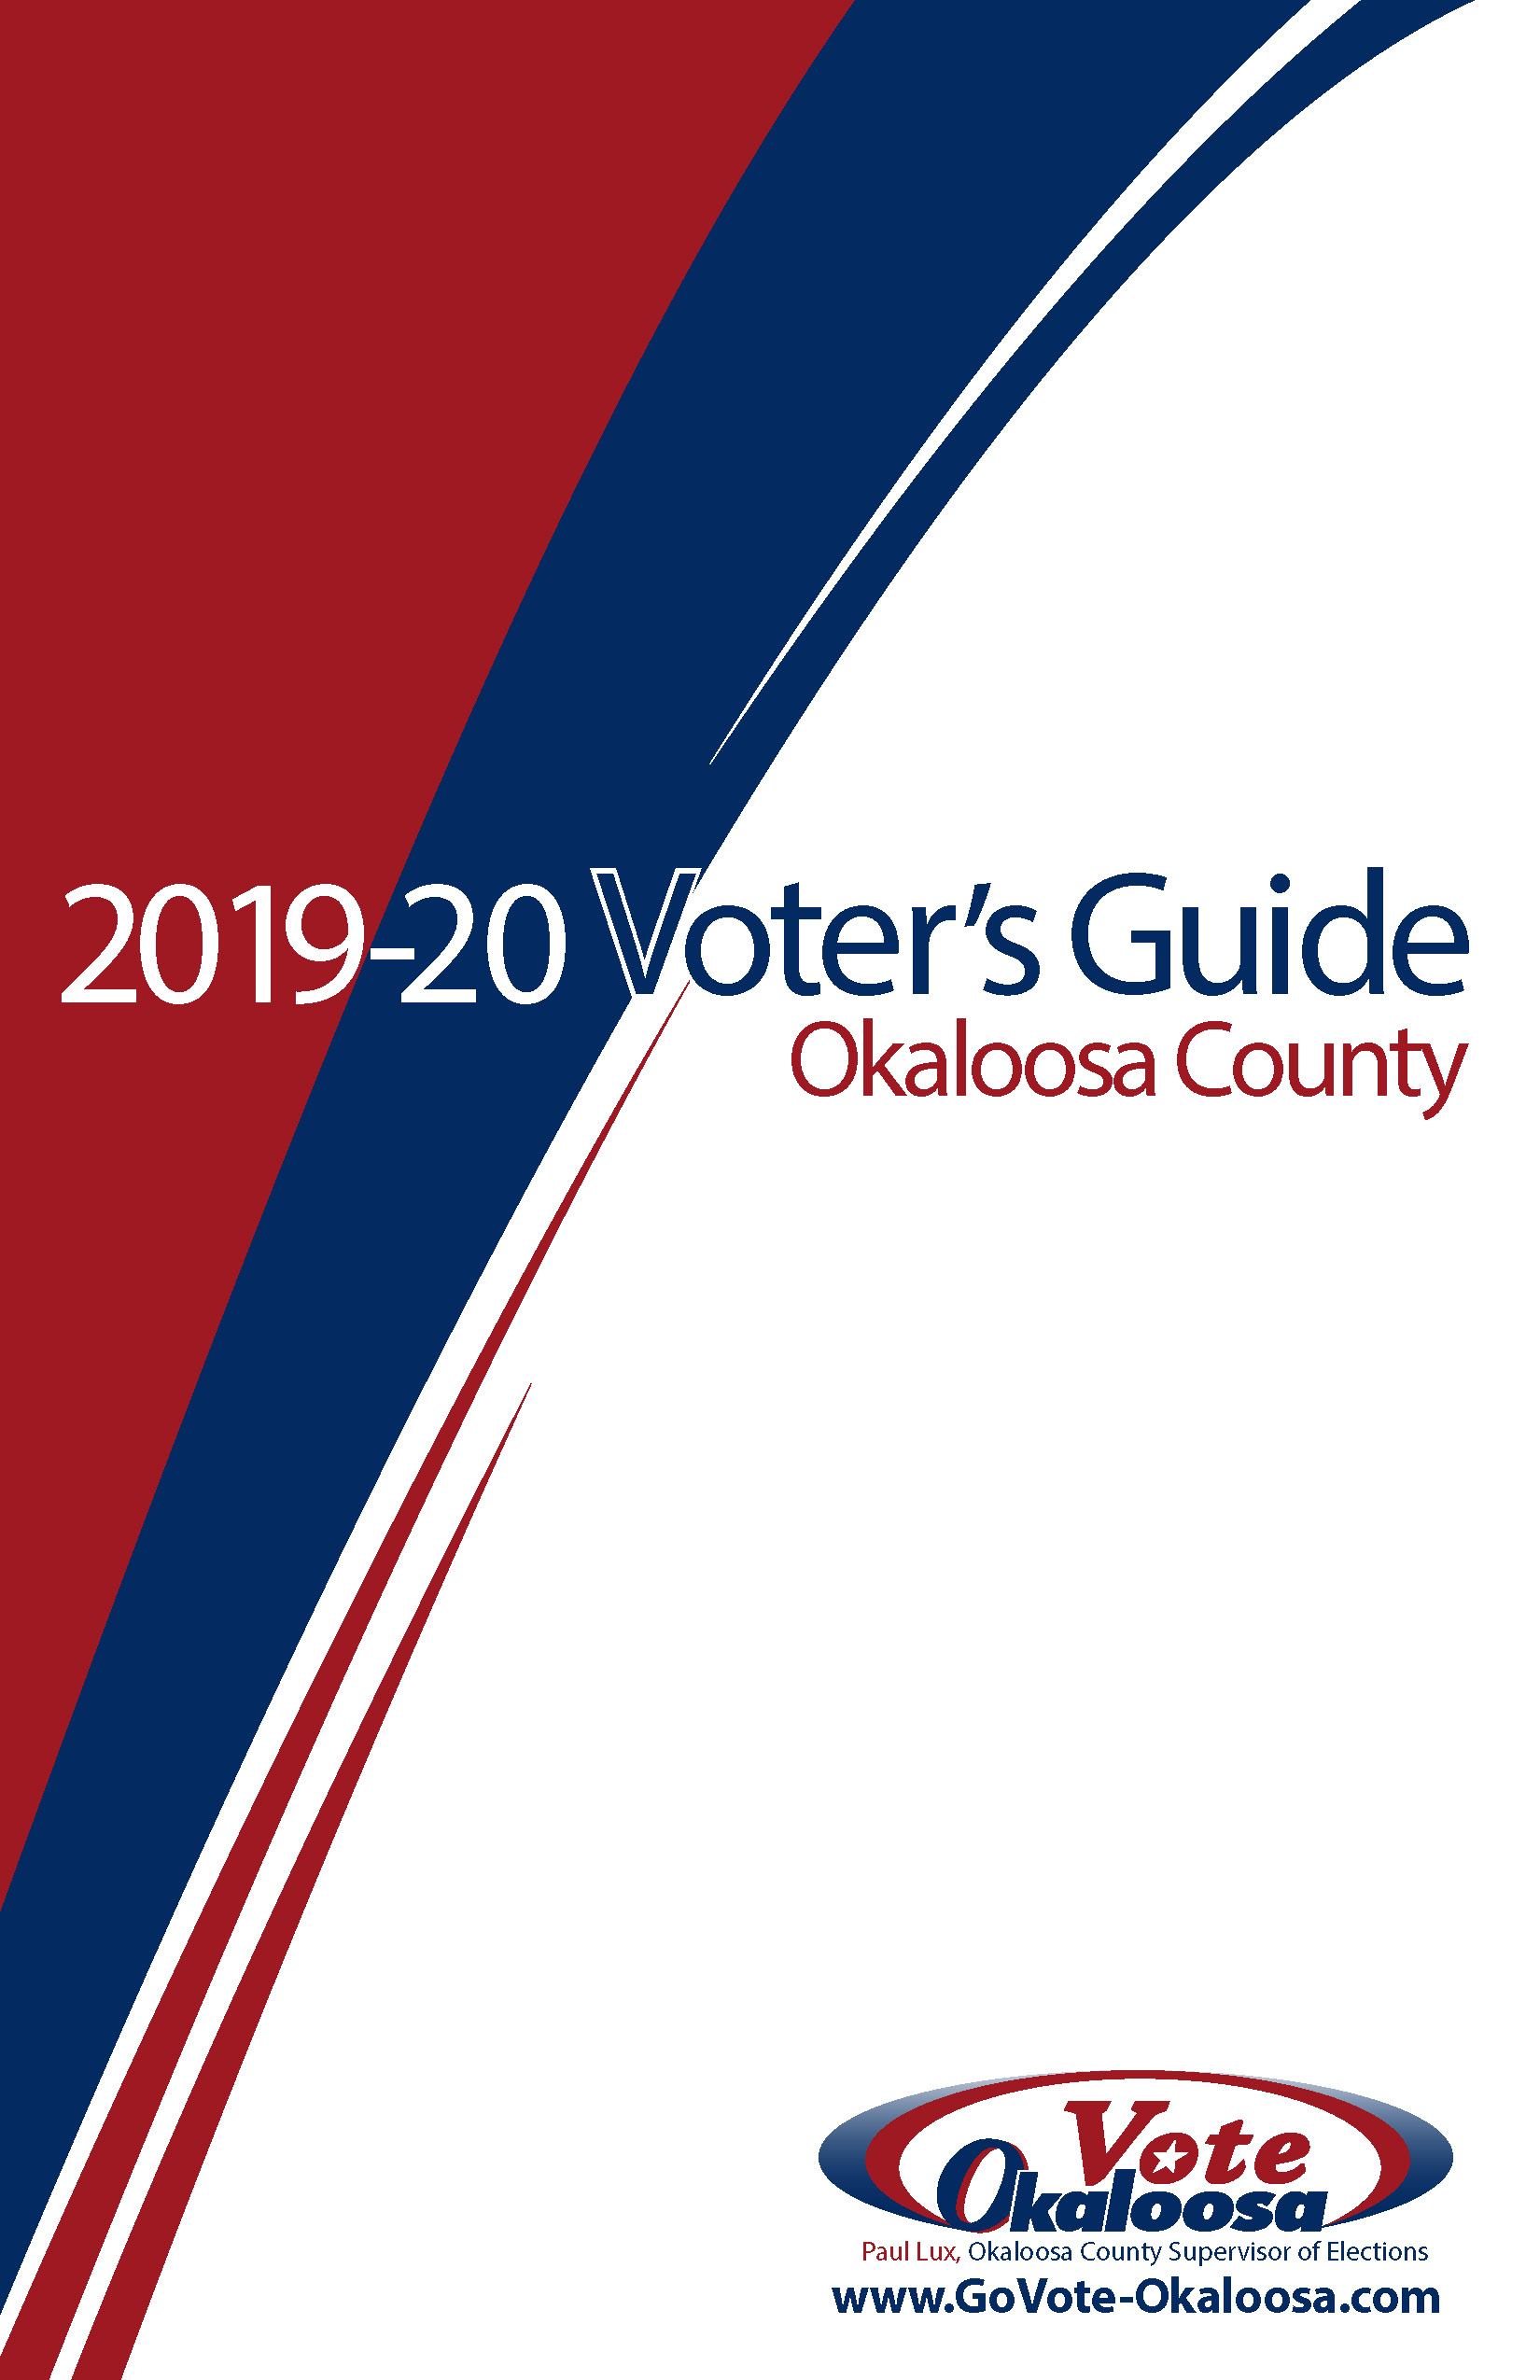 2019- 2020 Voter's Guide